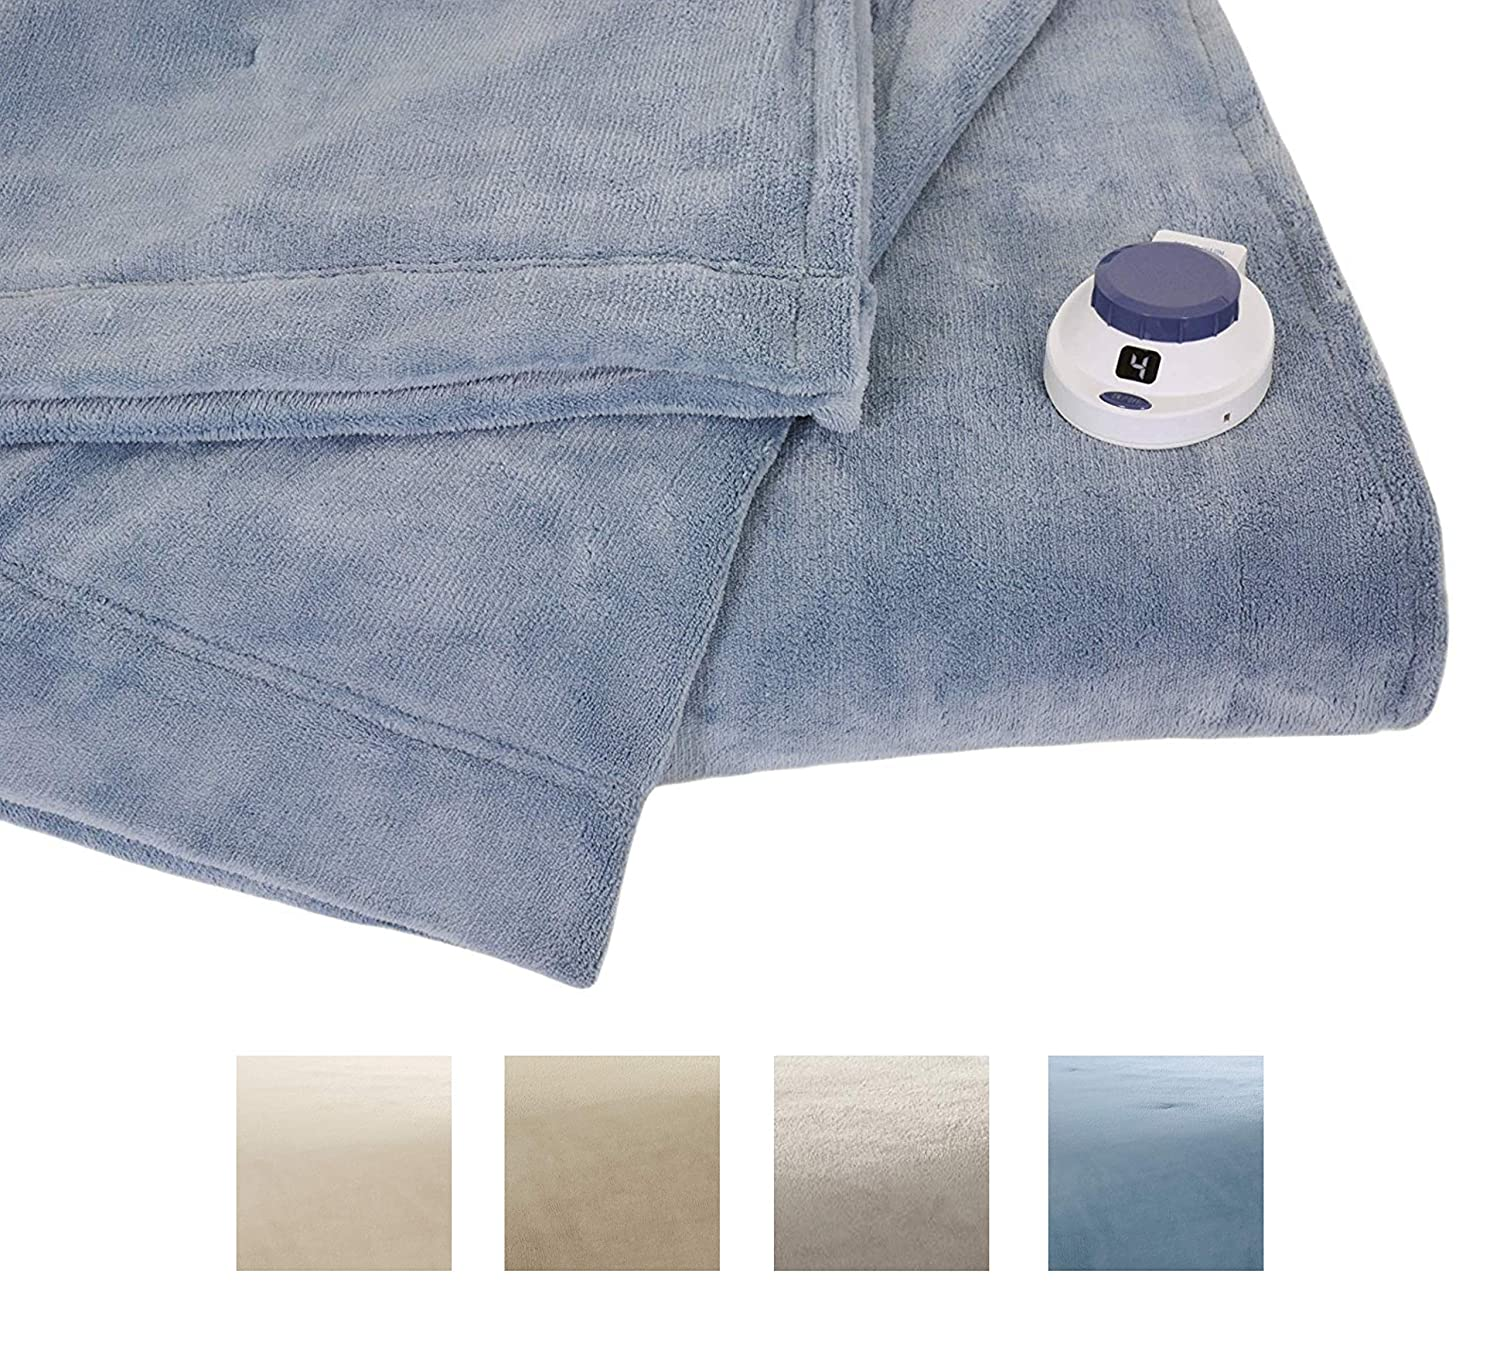 Serta | Luxe Plush Fleece Heated Electric Blanket with Safe & Warm Low-Voltage Technology Full Sapphire